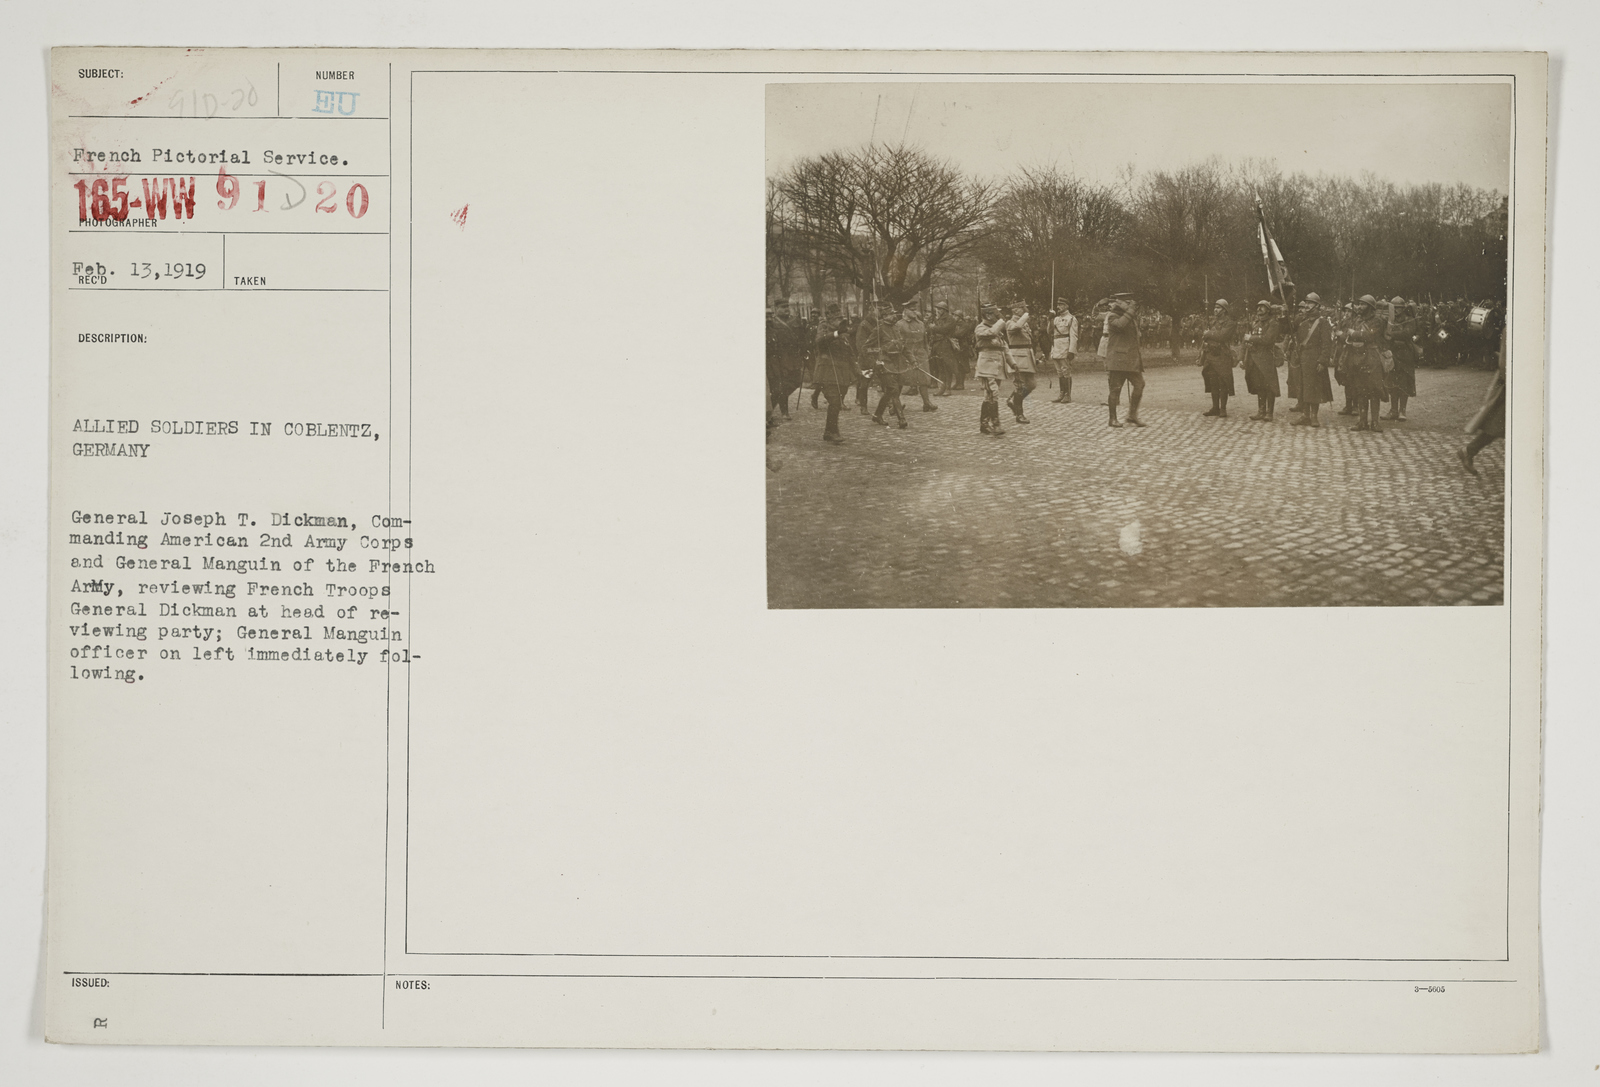 Ceremonies - Review in Theatre of Operations - Italian Army and Miscellaneous Reviews - Allied soldiers in Coblentz, Germany